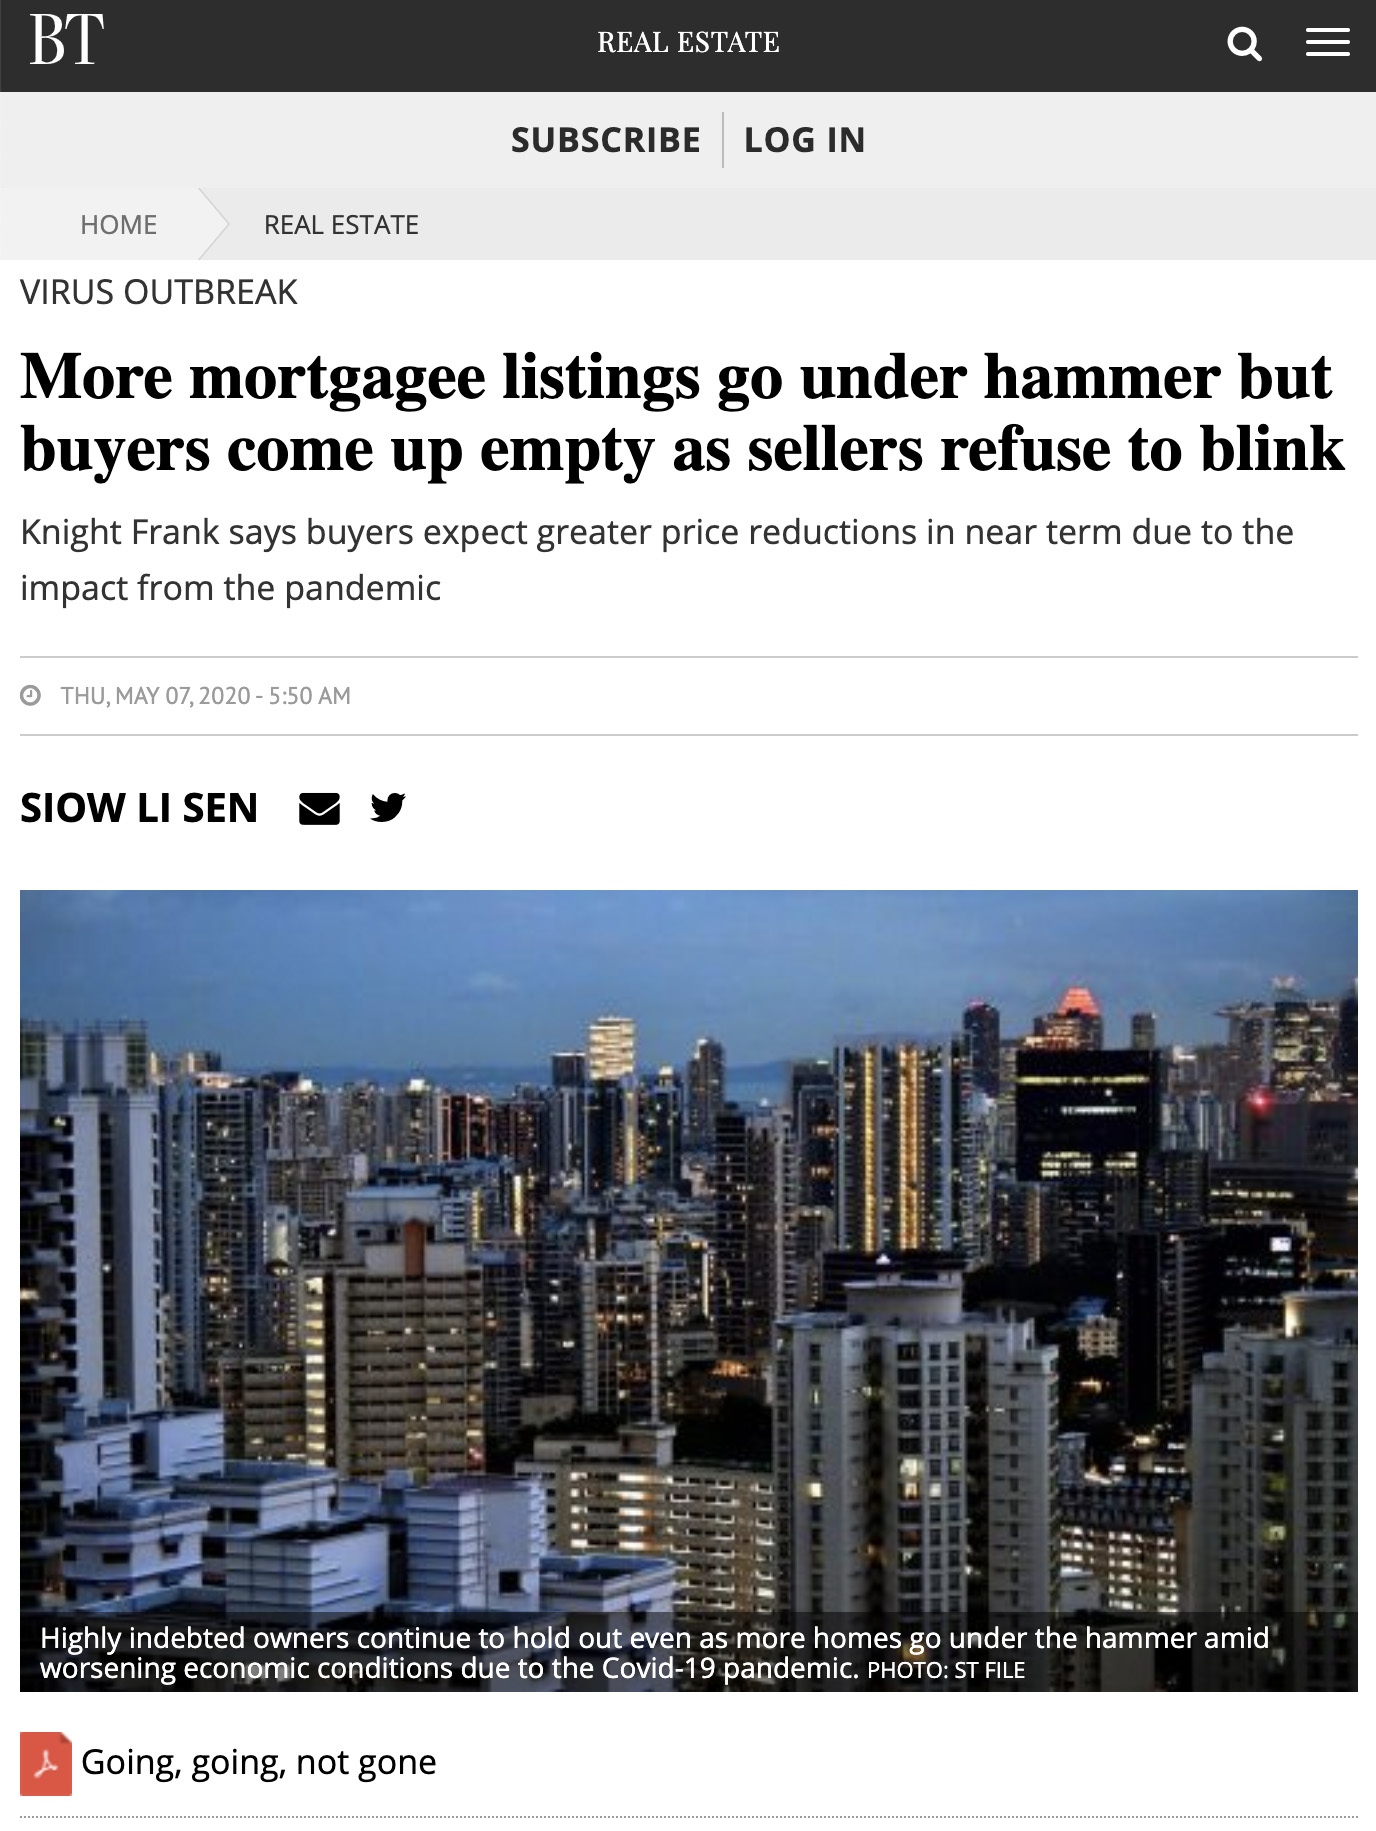 more-mortgagee-listings-go-under-hammer-but-buyers-come-up-empty-as-sellers-refuse-to-blink